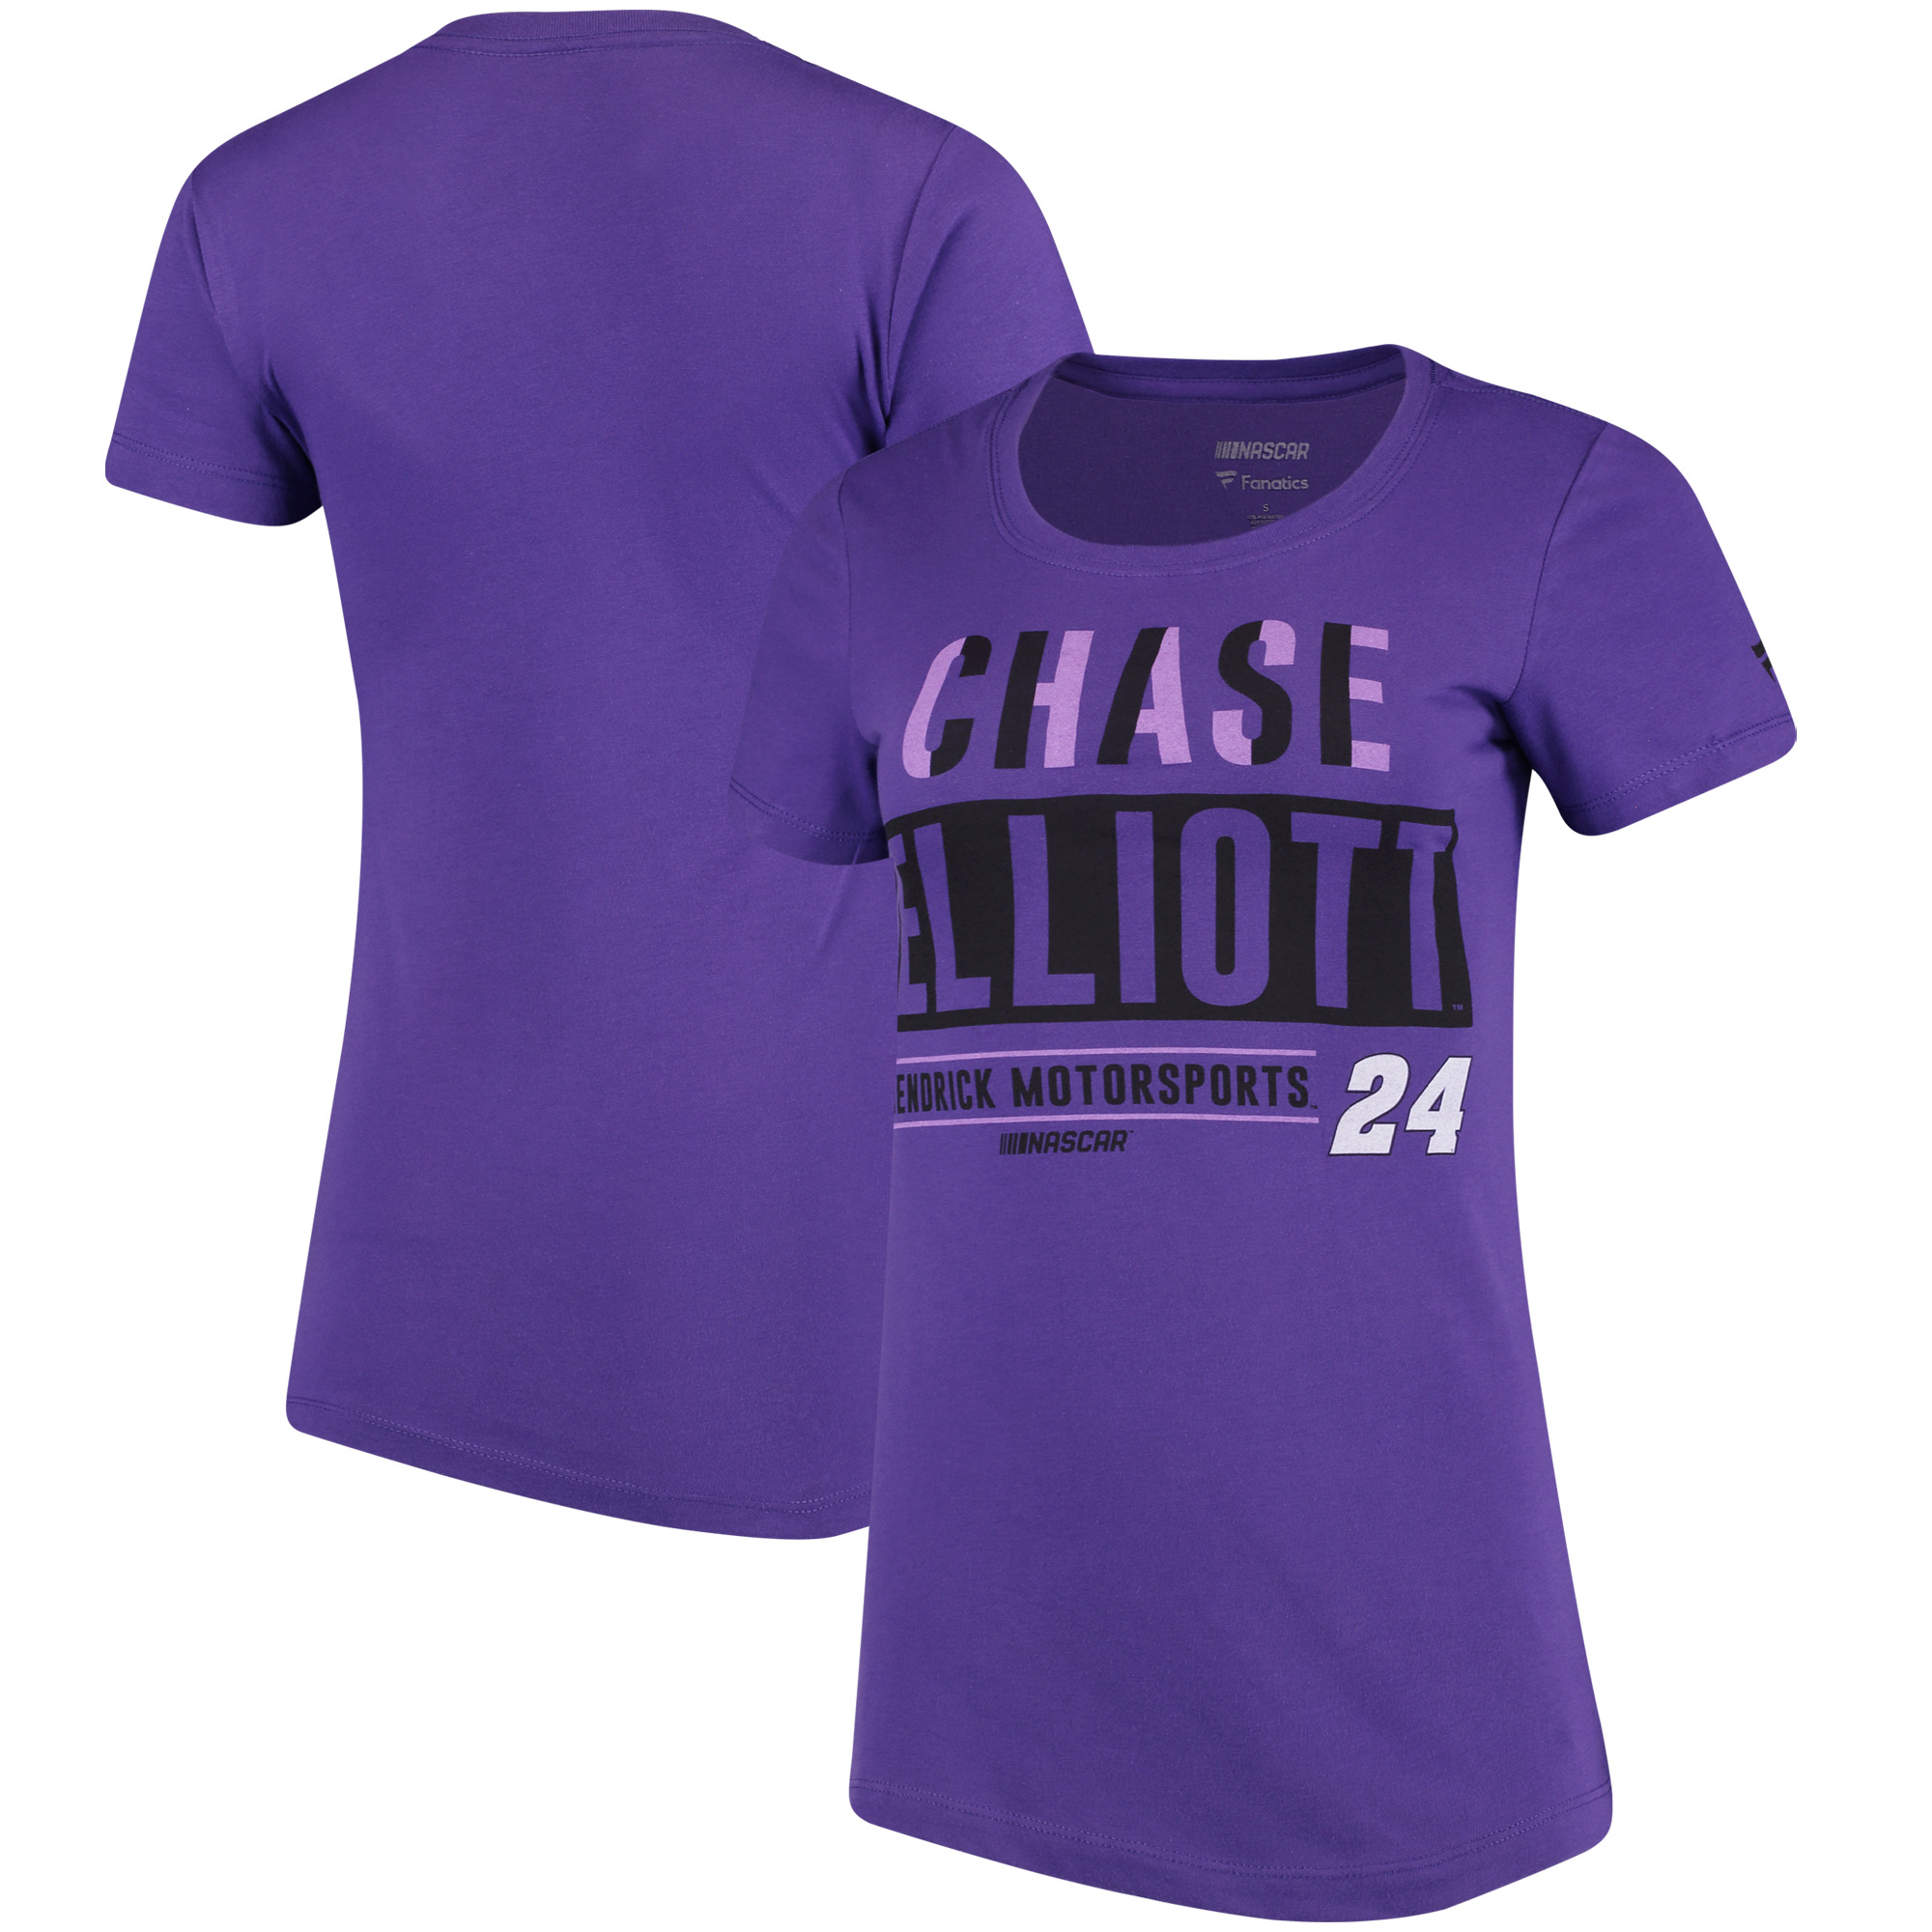 Chase Elliott Fanatics Branded Women's Driver Team T-Shirt - Purple